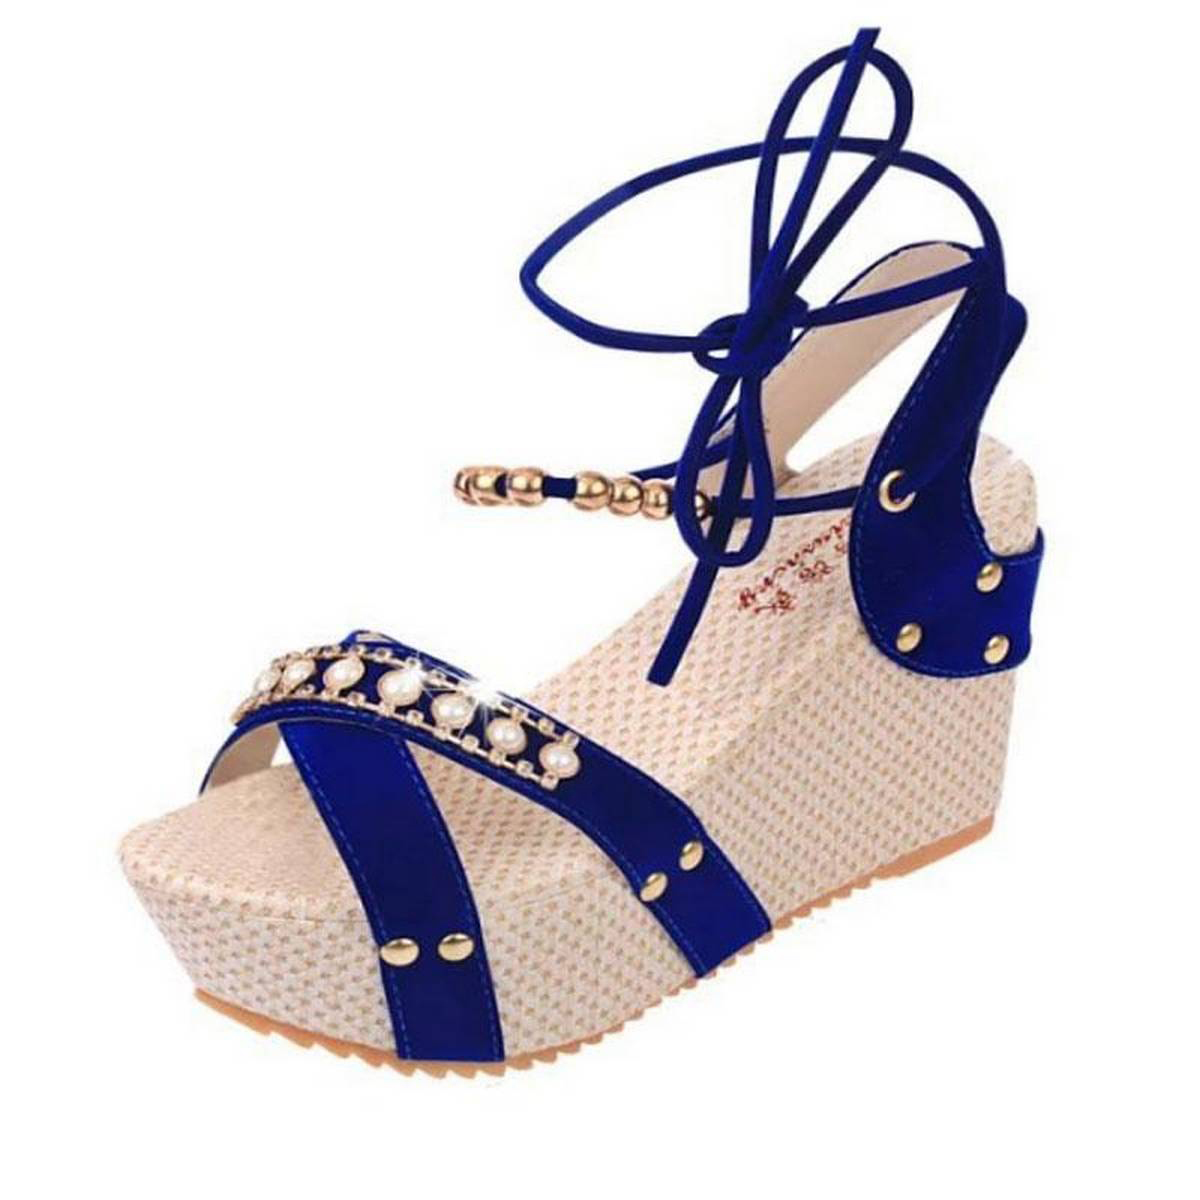 THICK CRUST WEDGE SANDALS FOR WOMEN